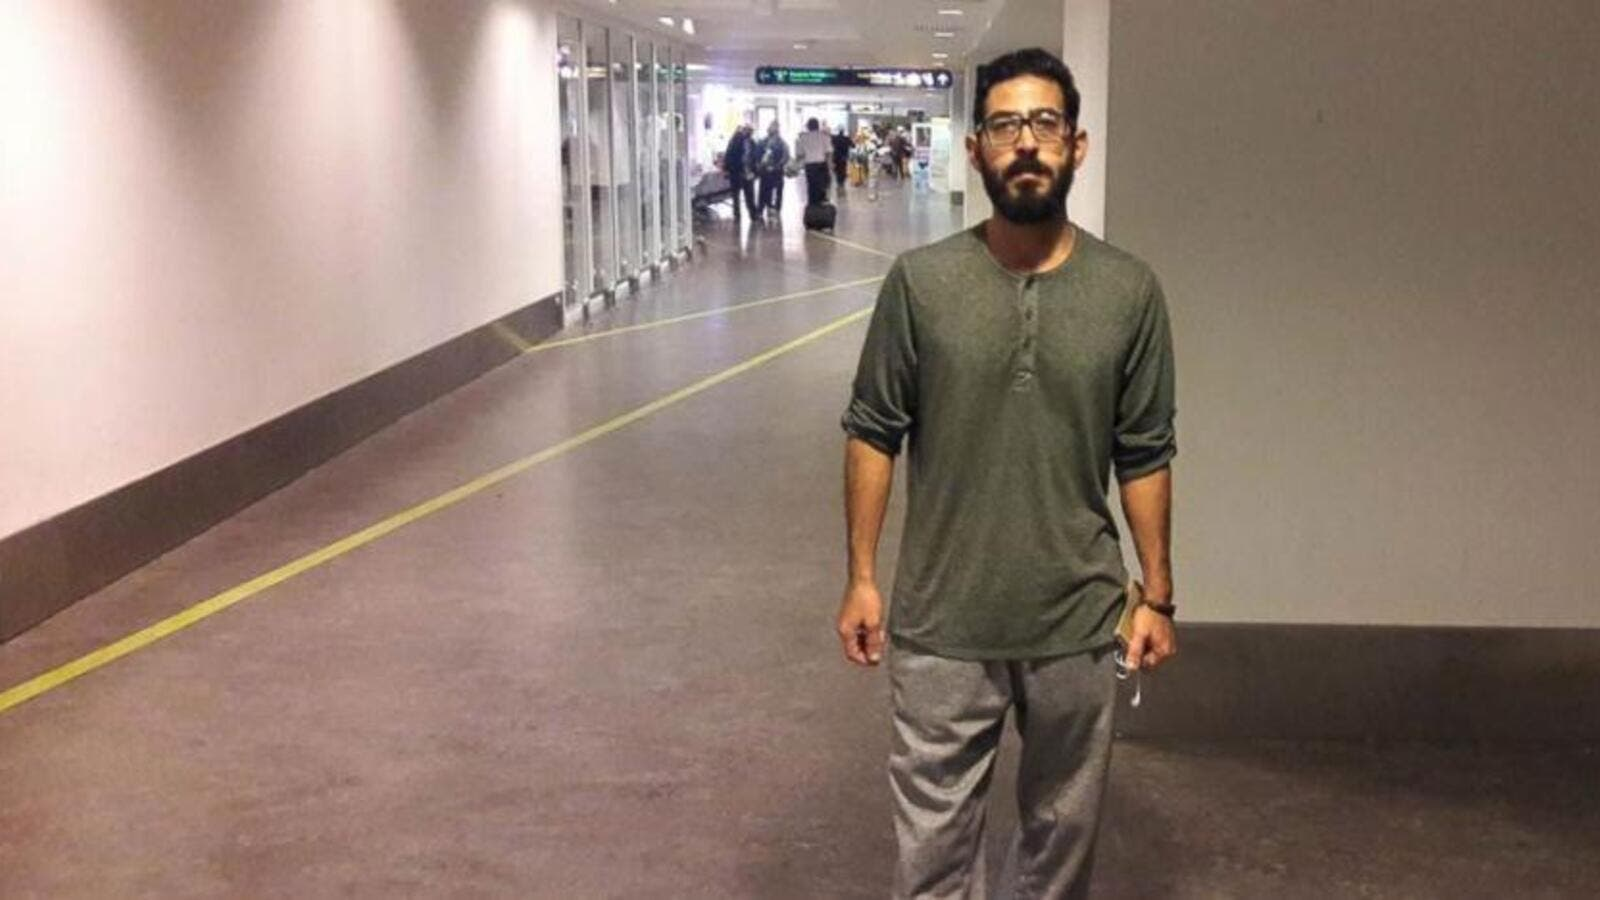 Hassan al-Kontar was stranded at a Malaysian airport for months. (Hassan al-Kontar)